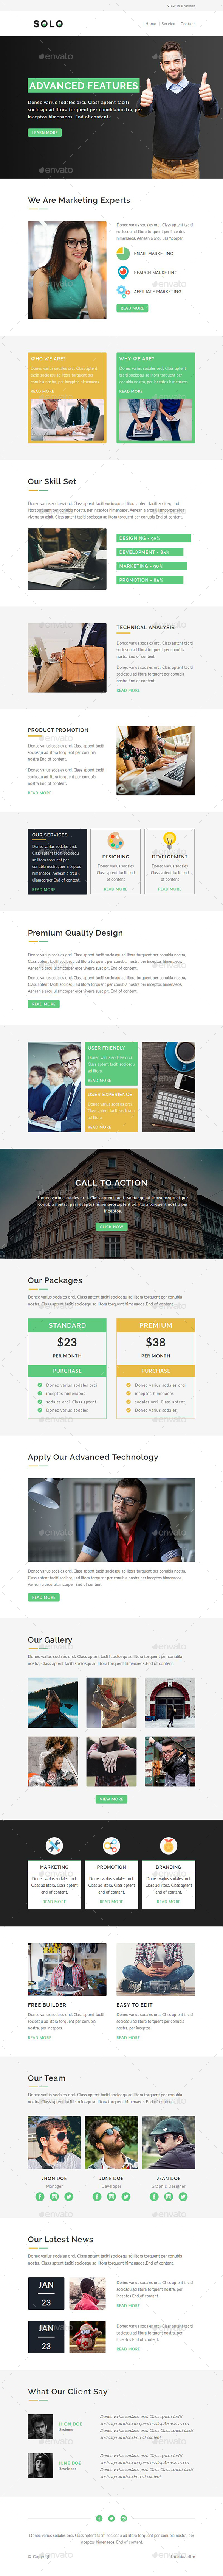 GraphicRiver Solo E-newsletter PSD Template 20321981